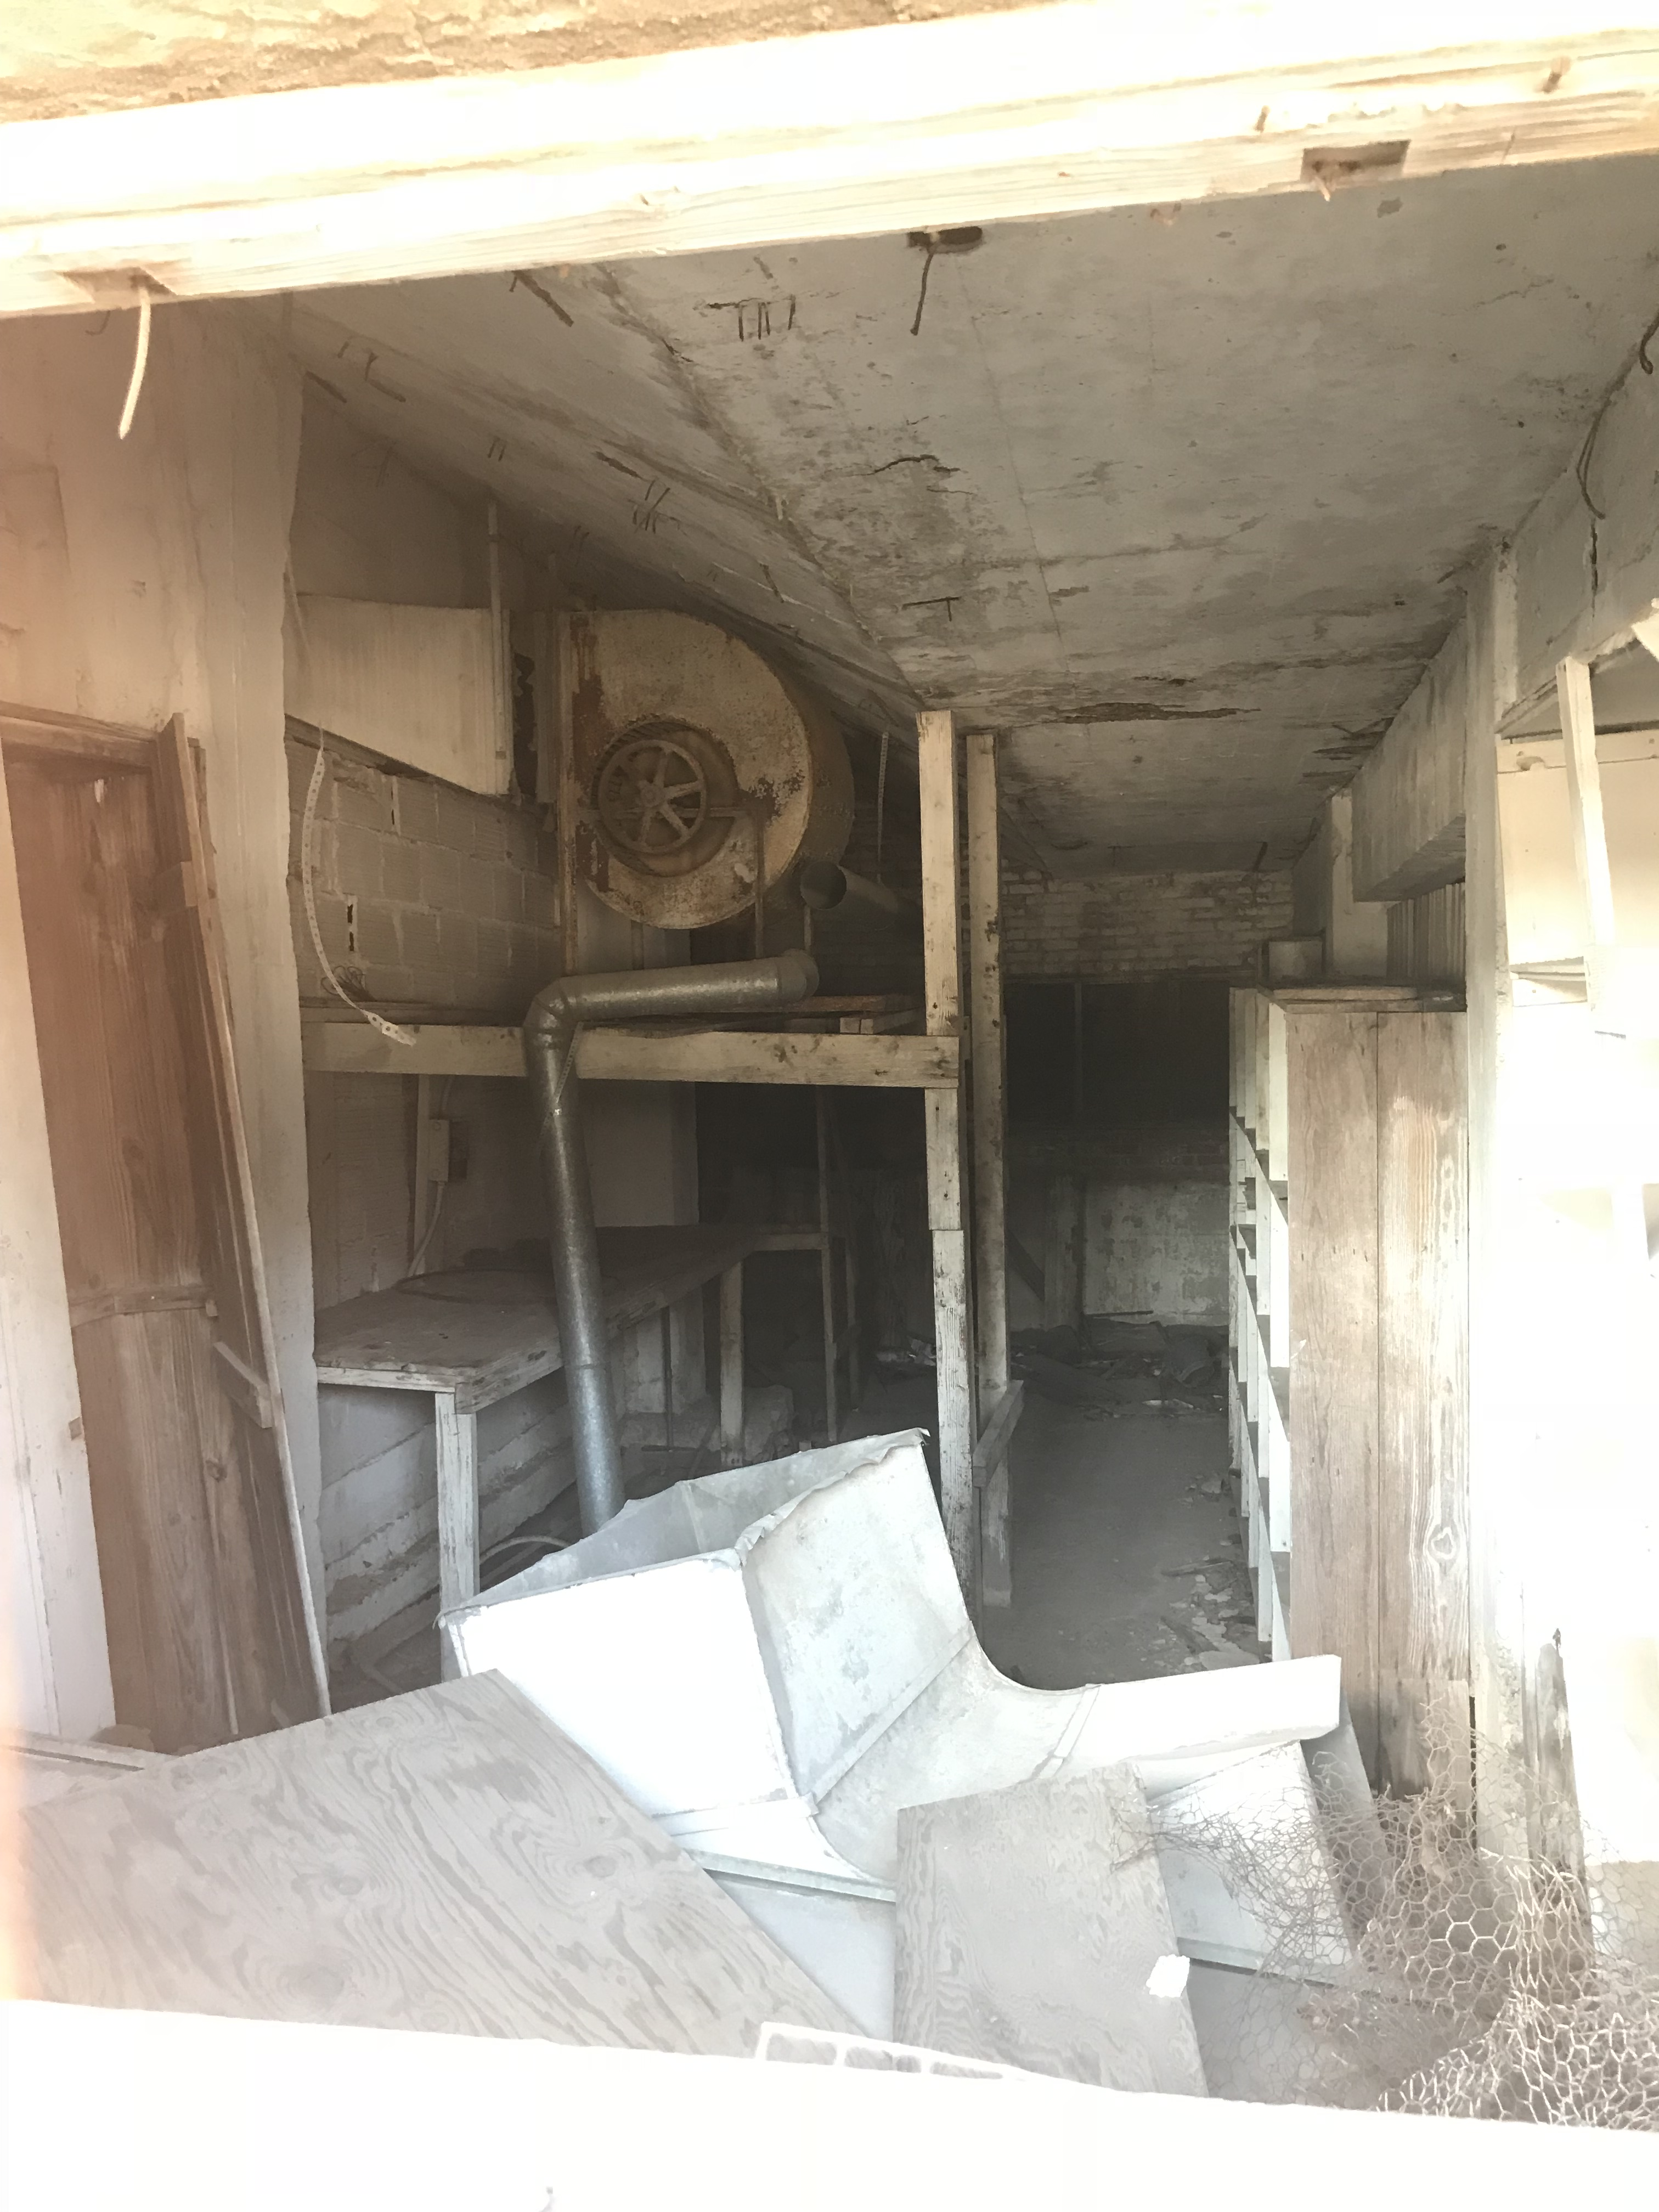 picture of a storage room at an abandoned hotel.